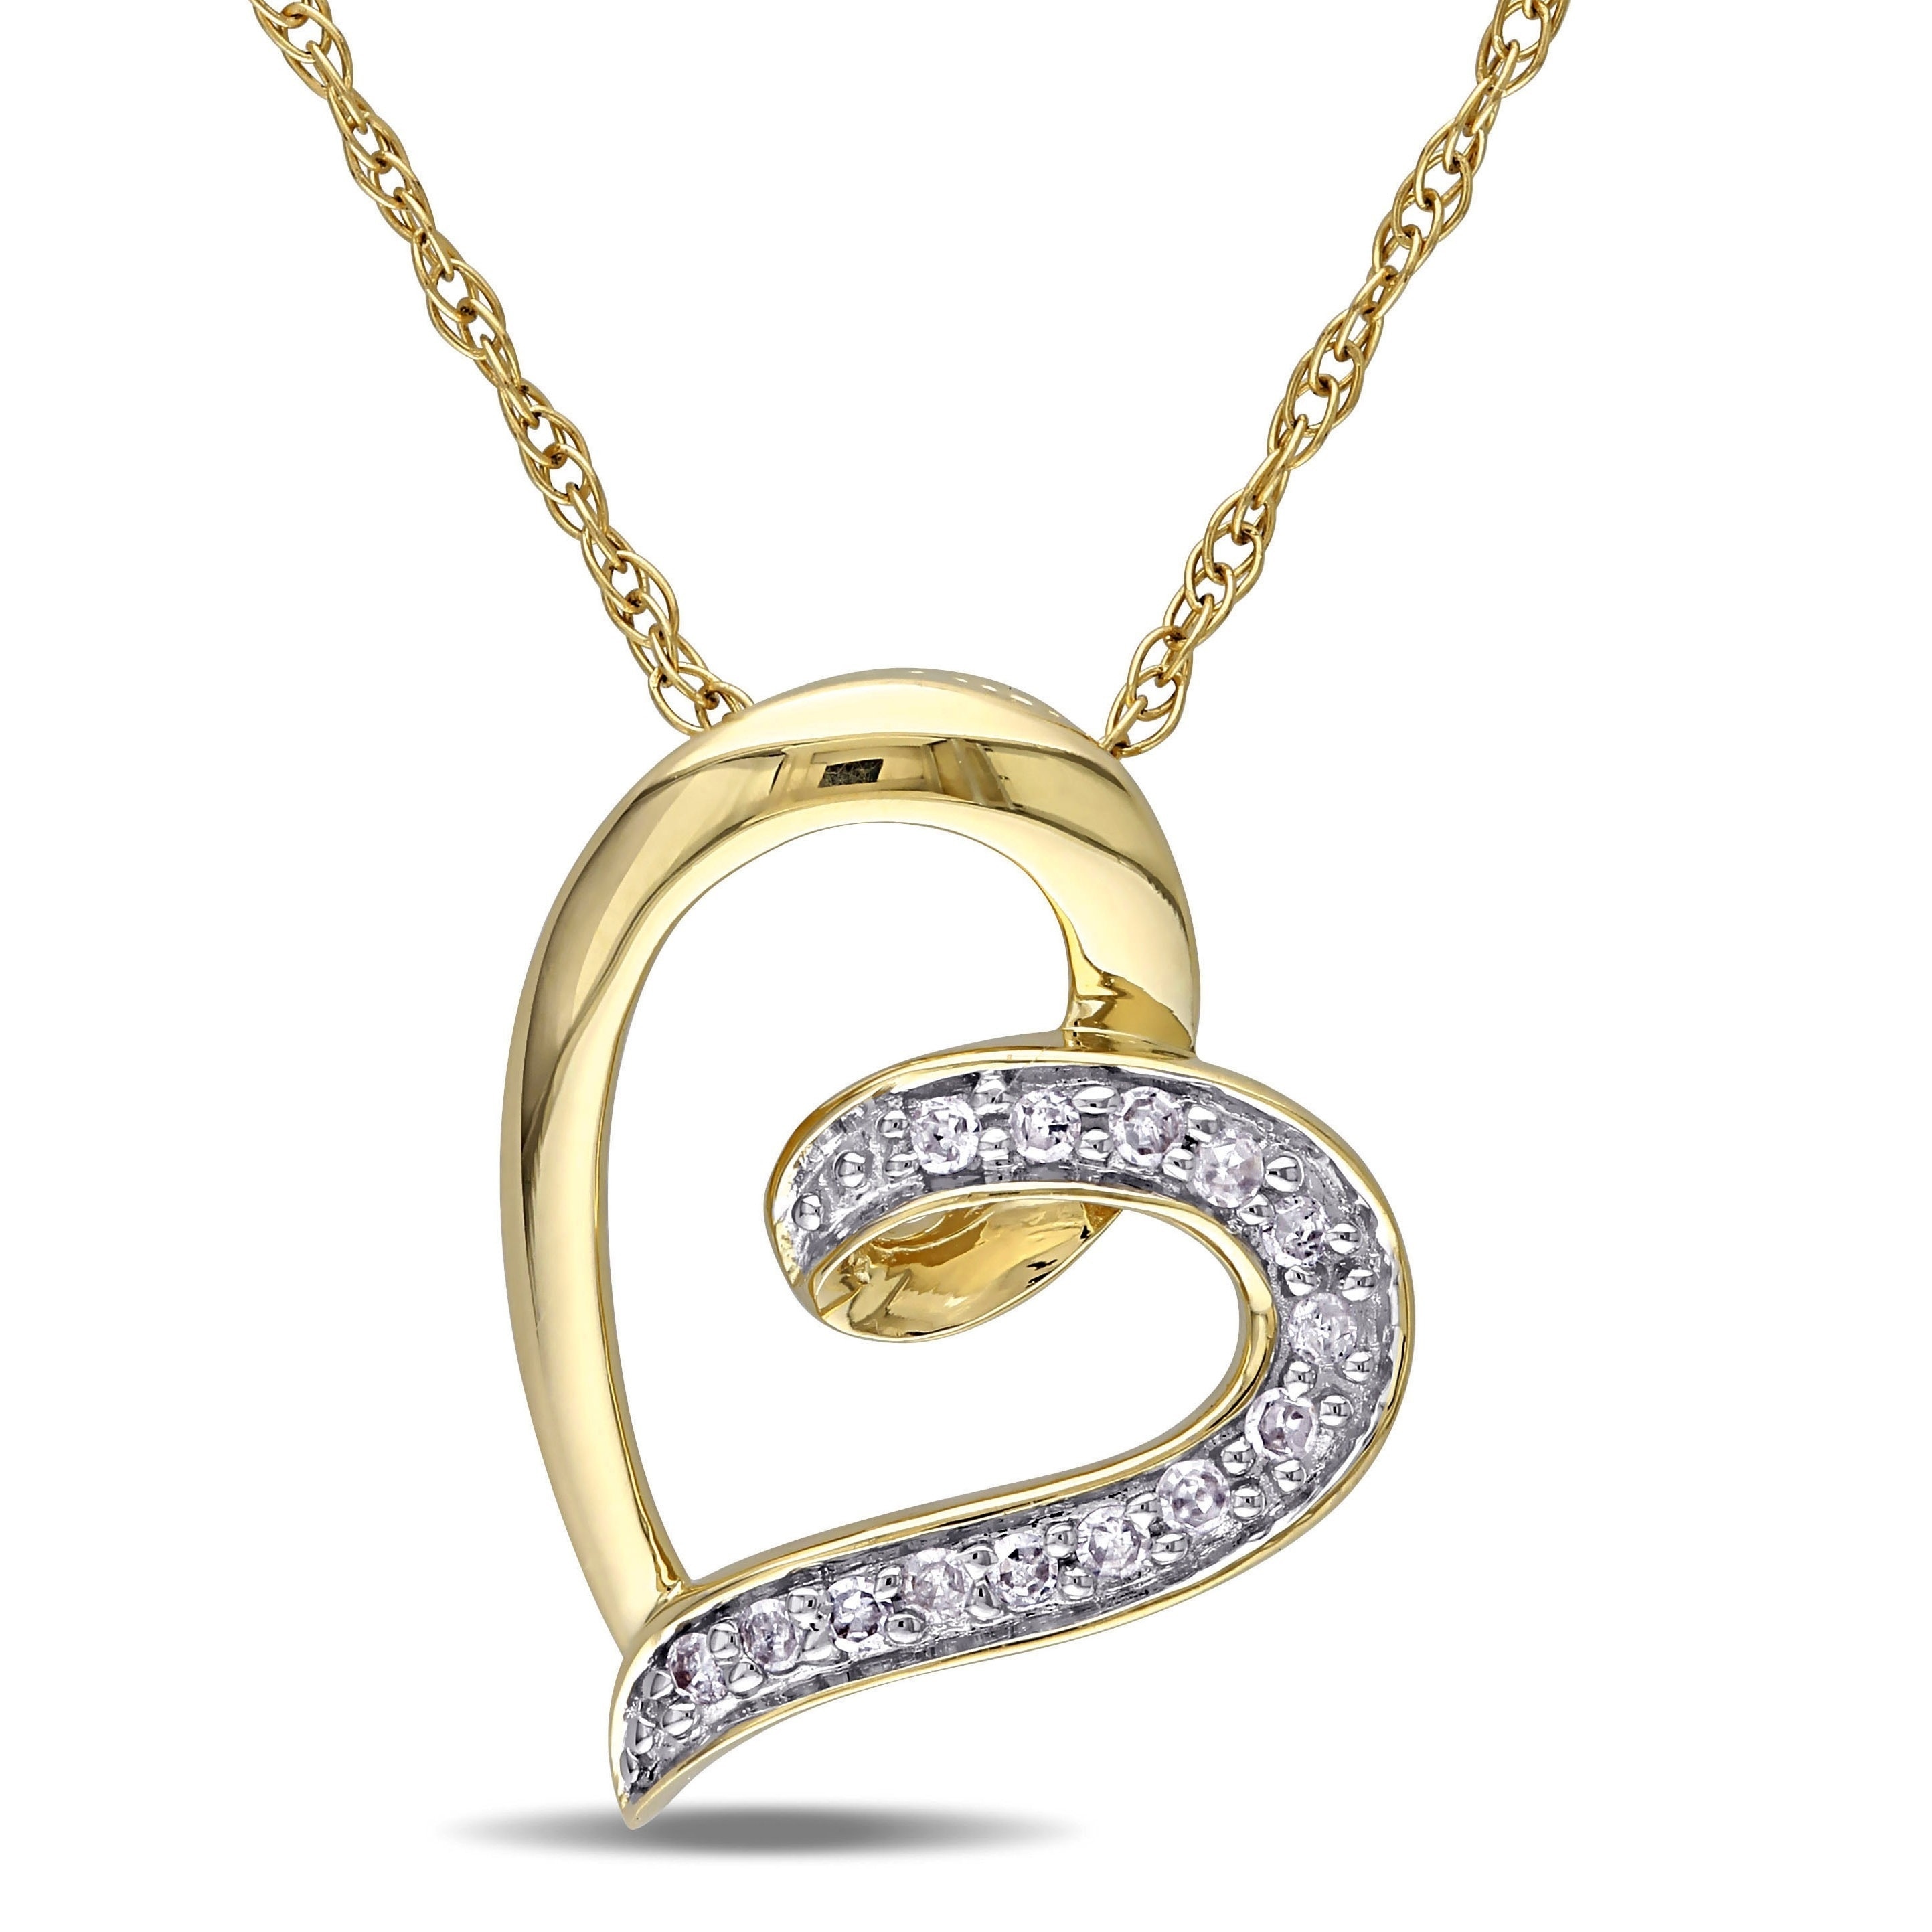 necklace pendant yellow accent mens diamond gold at eagle viomart s com men